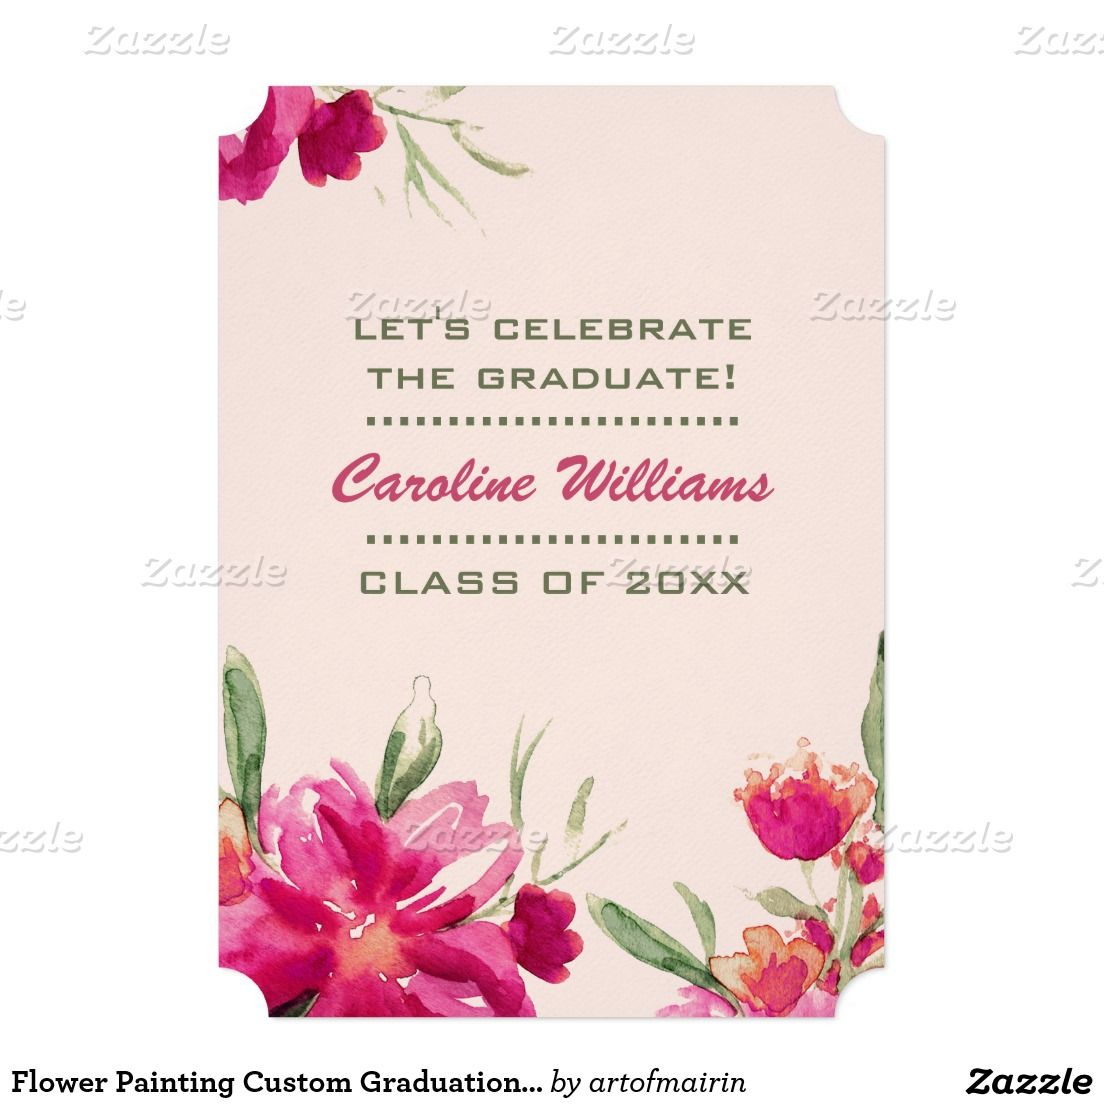 Flower painting custom graduation party invitation party invitations